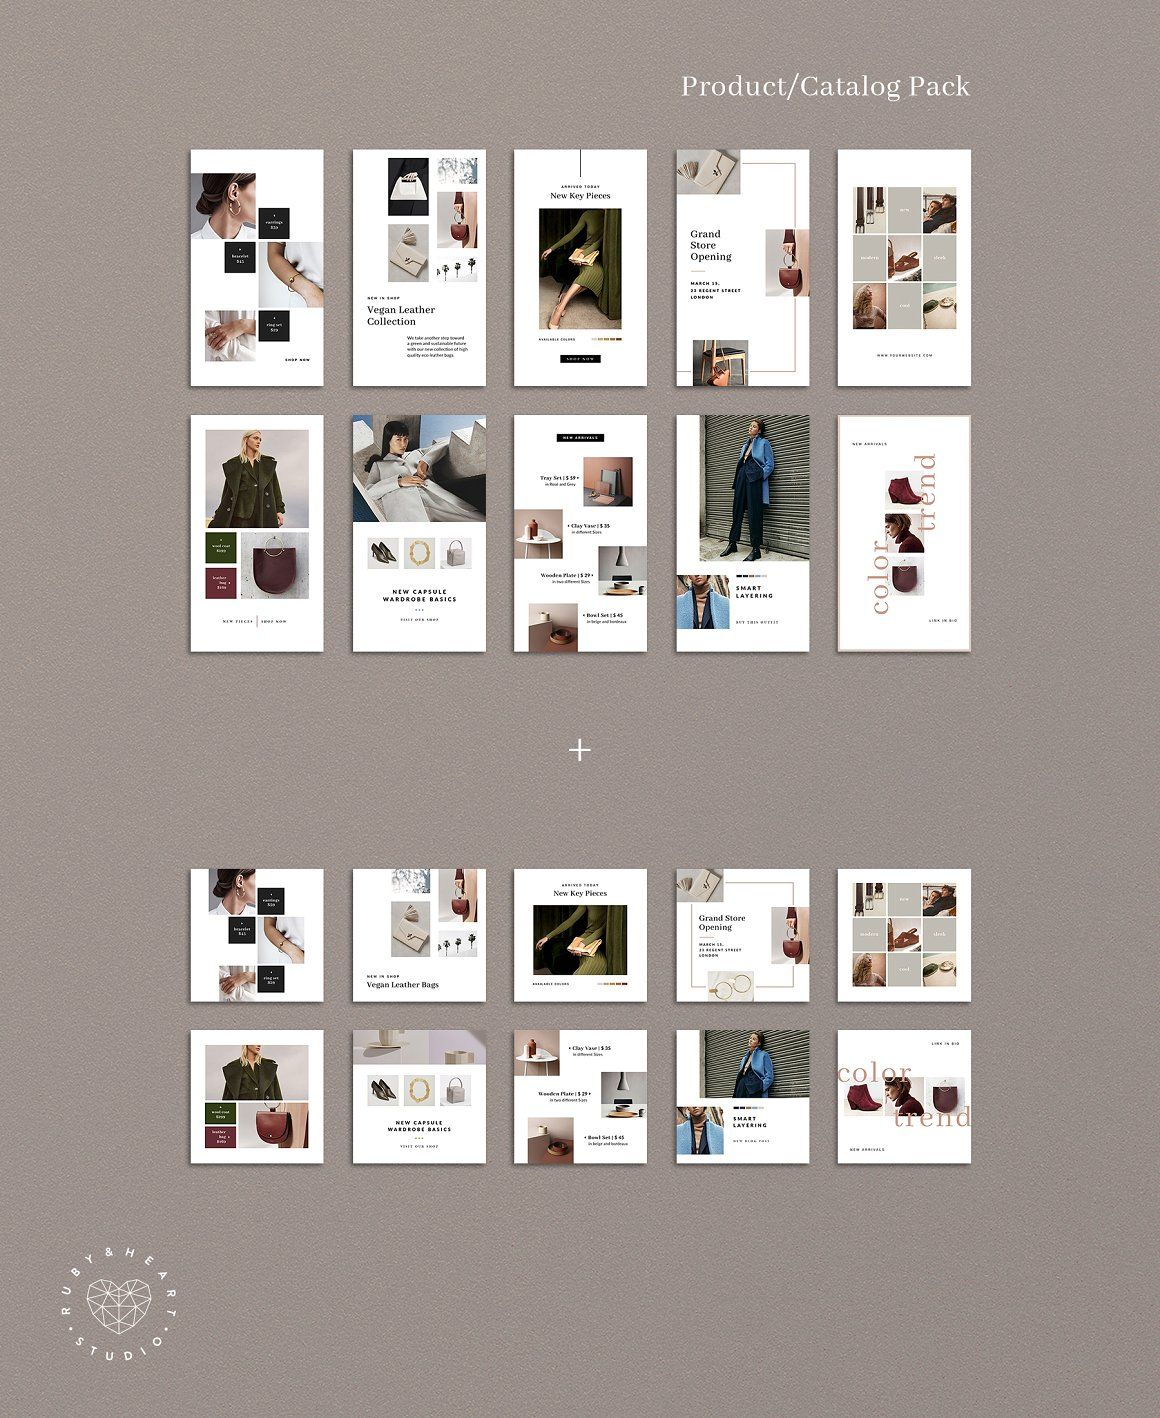 Animated Product Promo Insta Pack Instagram Template Story Template Post Template Animated Instagram Instagram Layout Layout Design Instagram Design